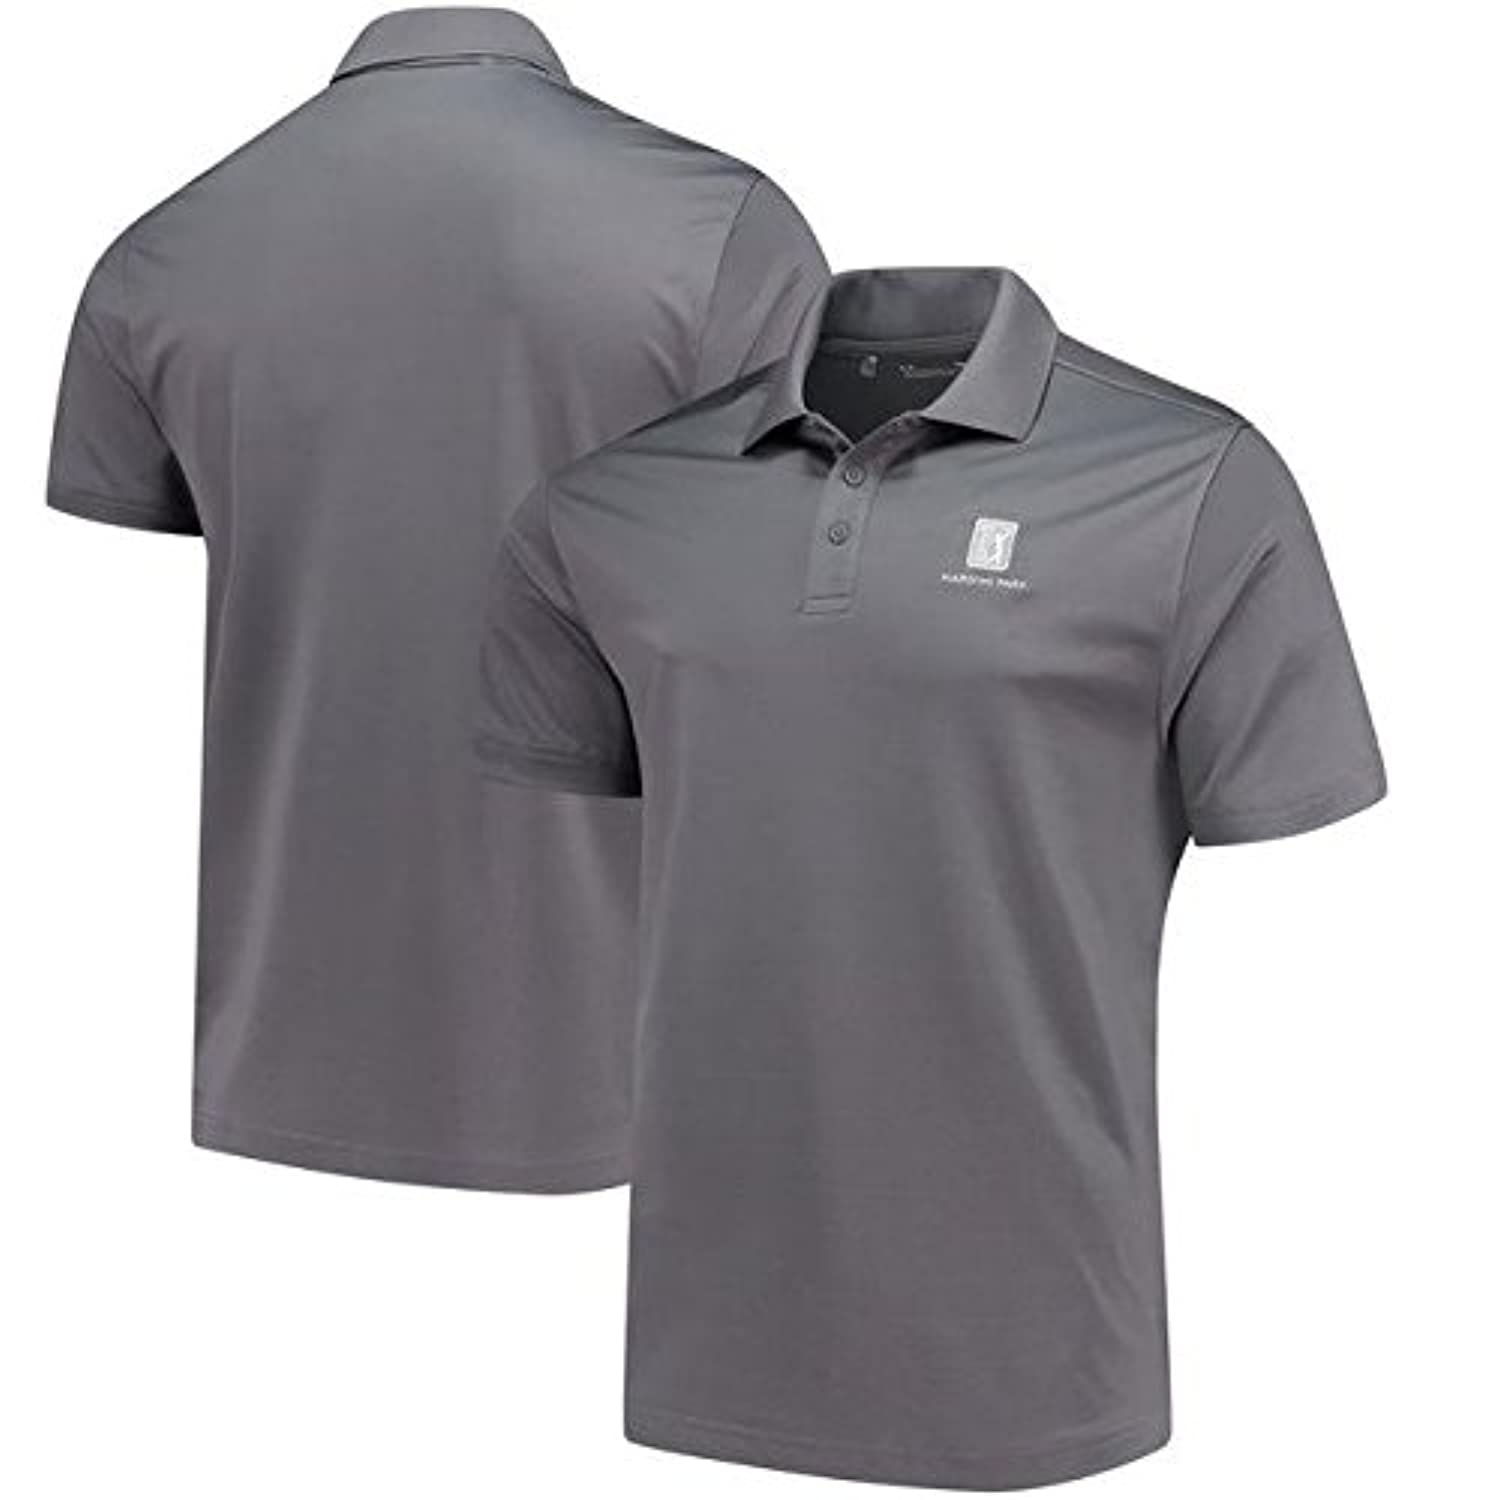 Under Armour Under Armour TPC Harding Park Graphite Performance Polo スポーツ用品 【並行輸入品】